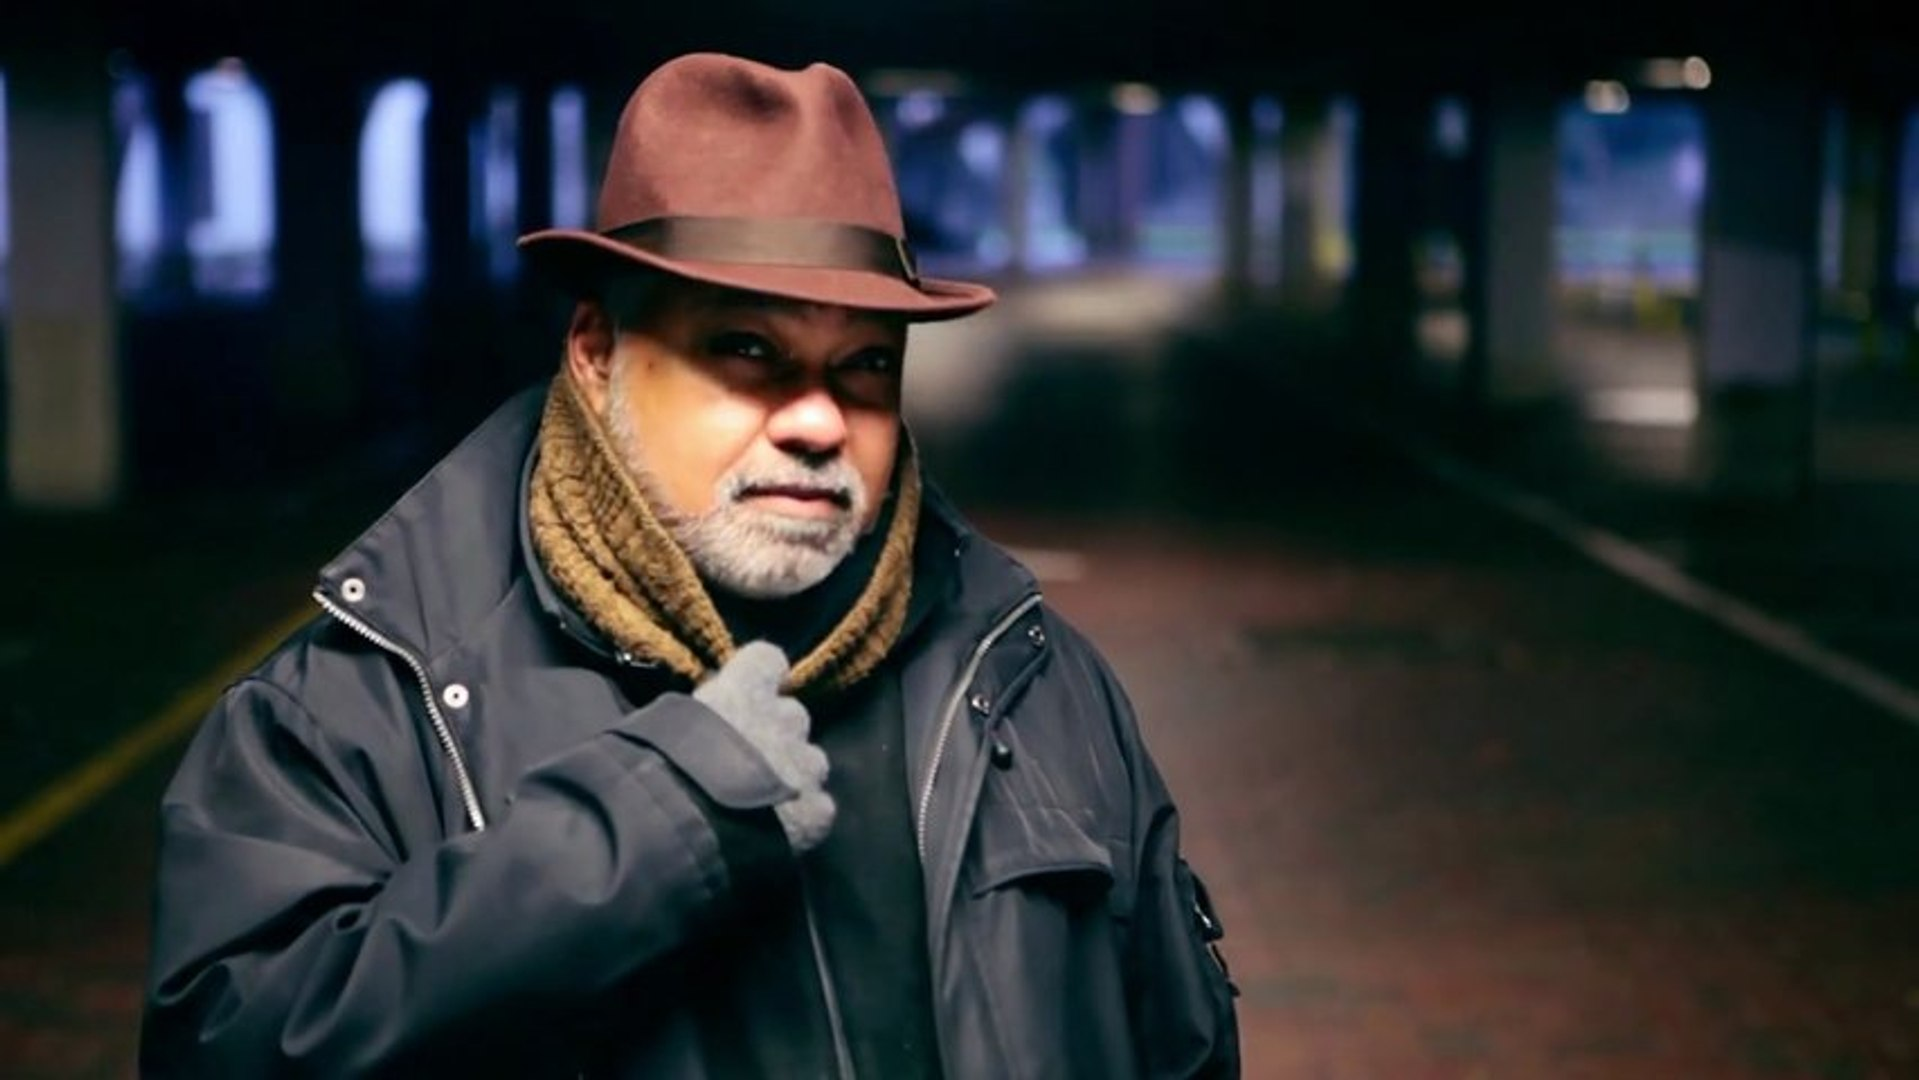 Bluey (aka Jean-Paul Maunick of Incognito) - Got to Let My Feelings Show